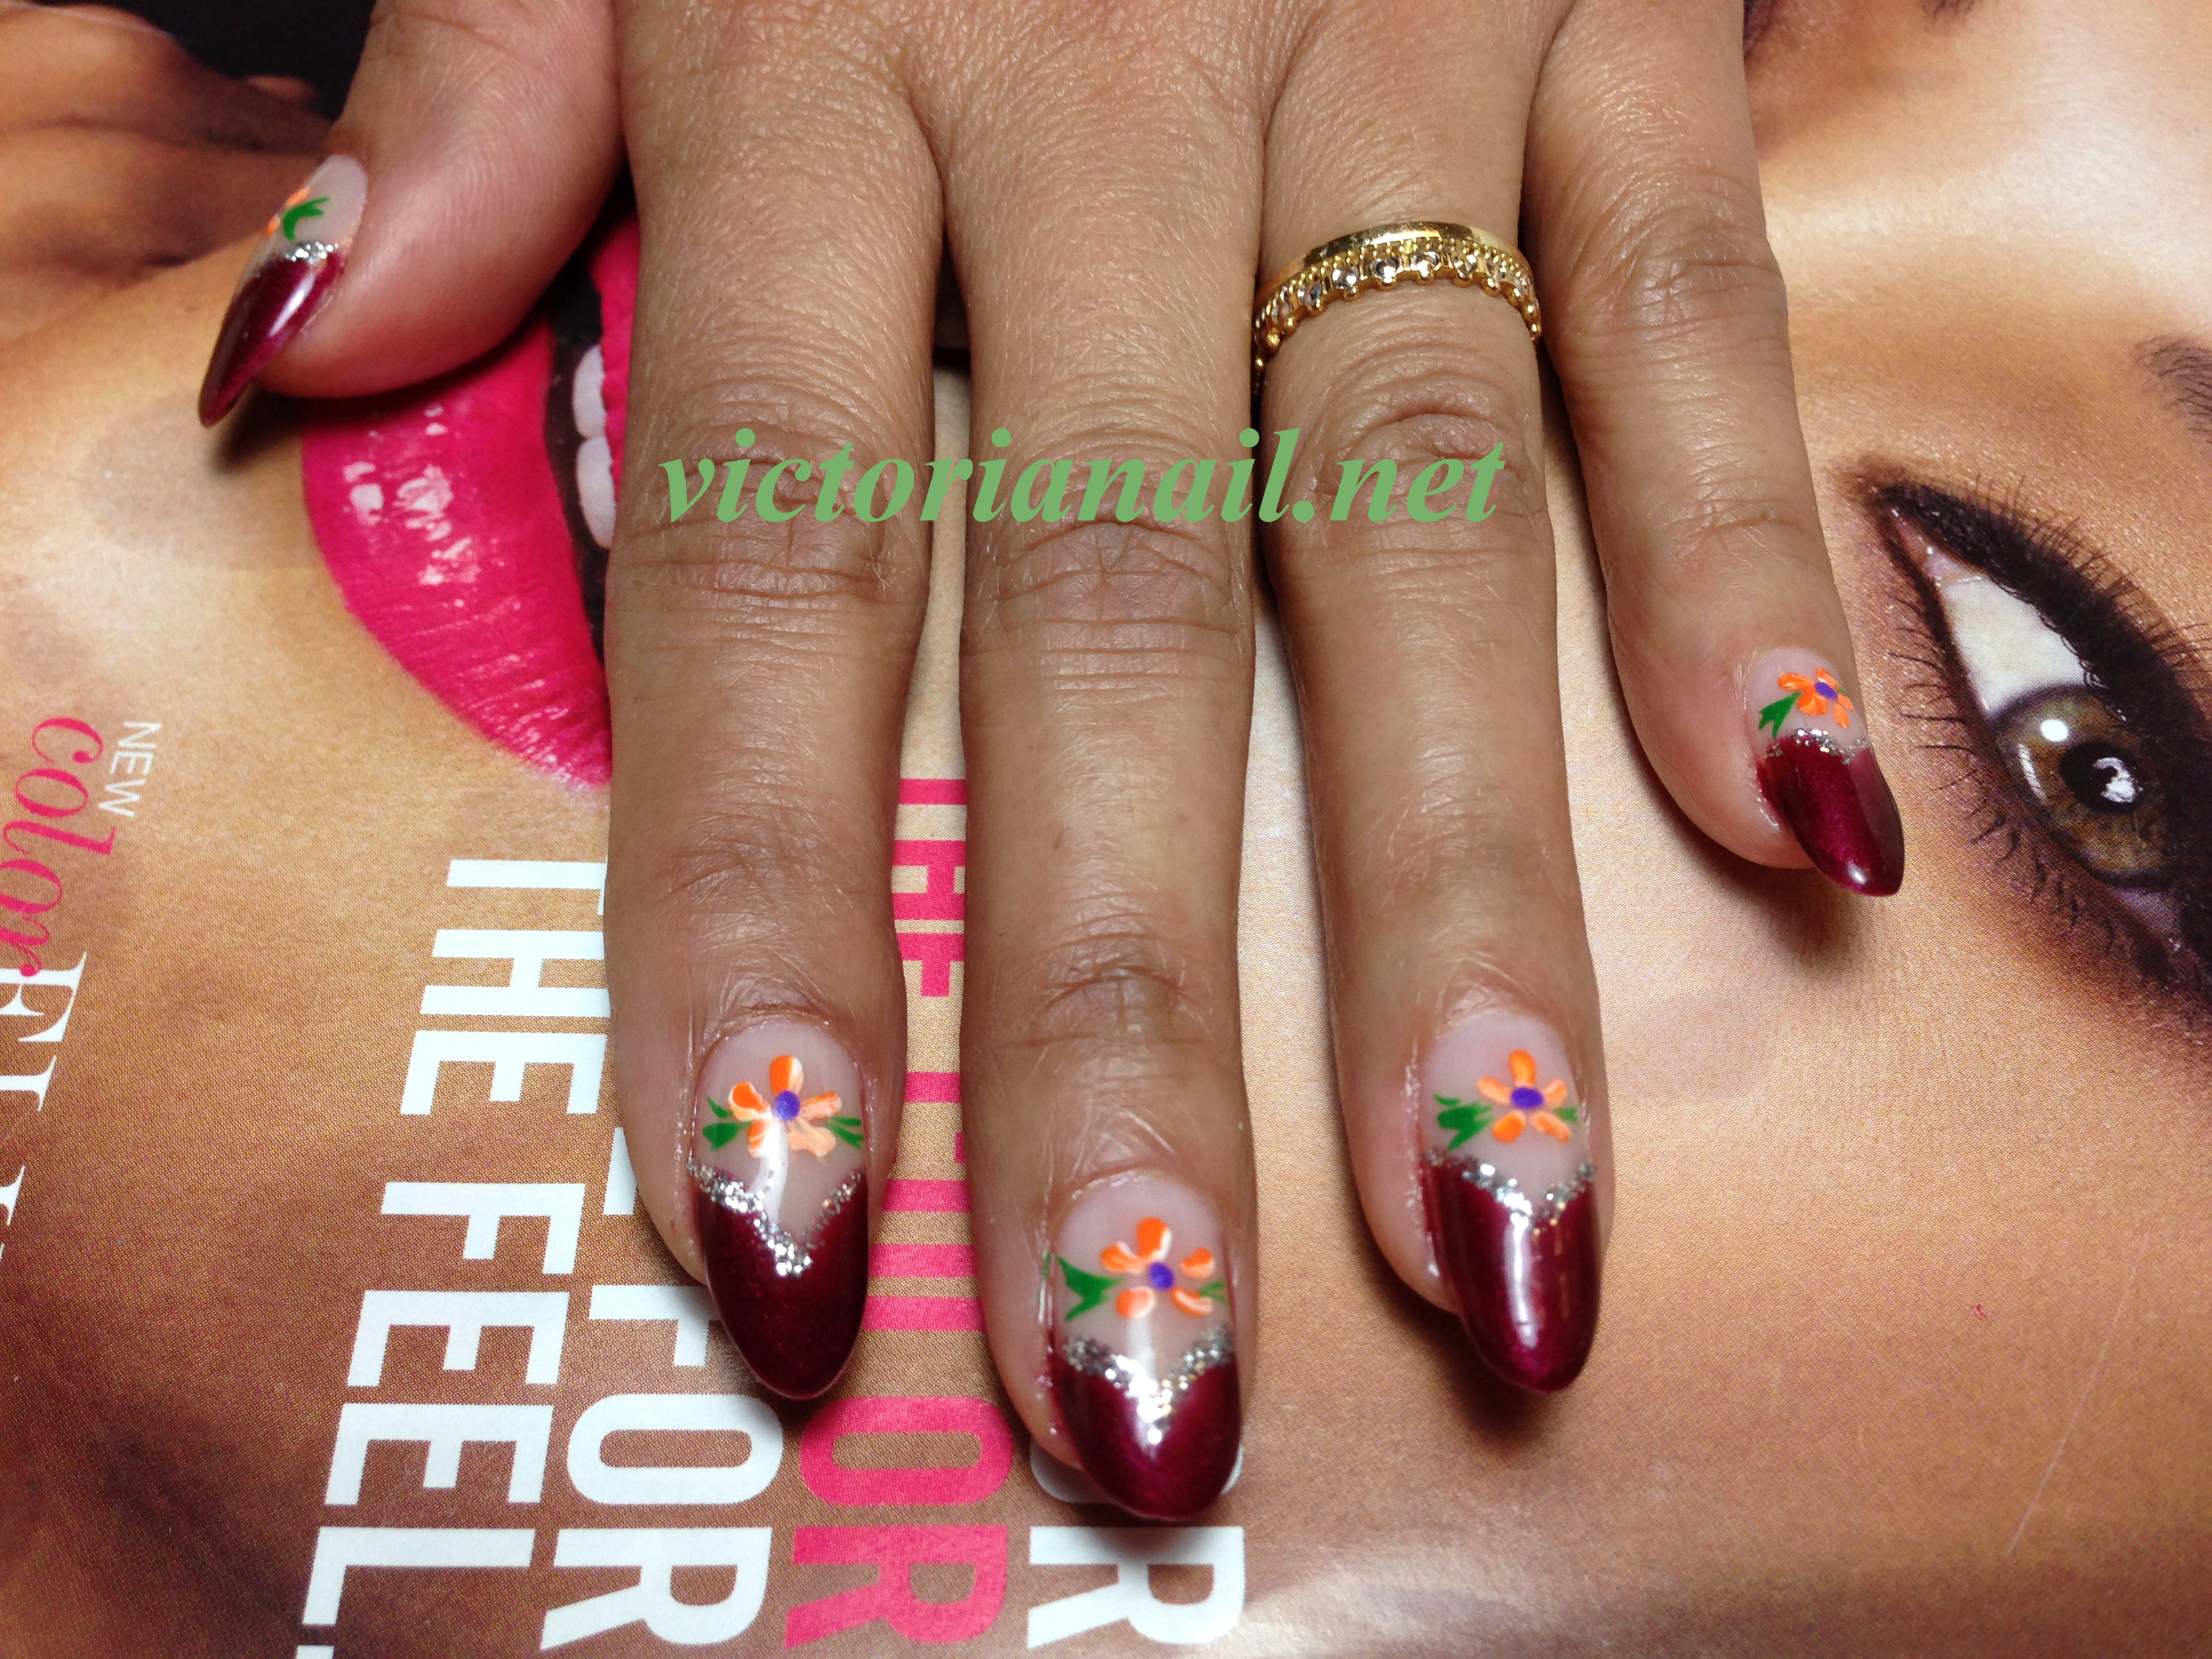 Nails ideas for prom 2015 on Victoria Nails - Special ...